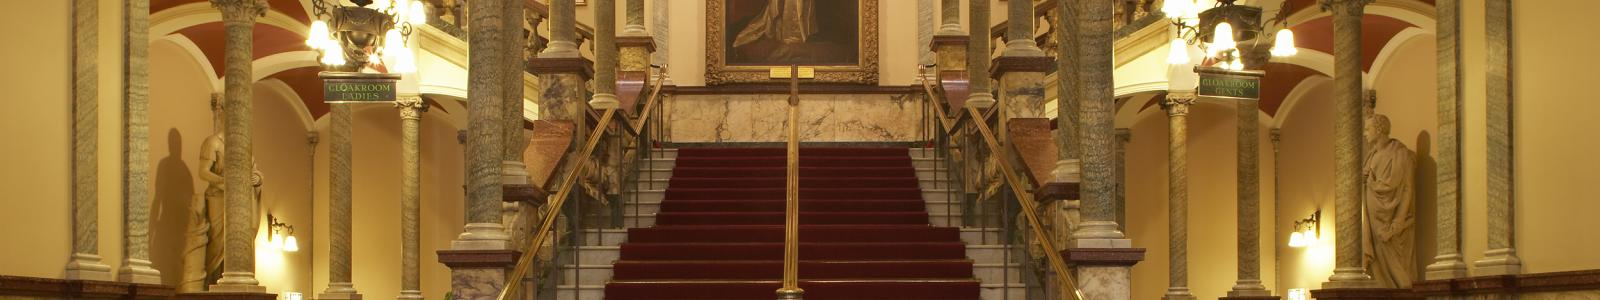 Hull City Hall main staircase